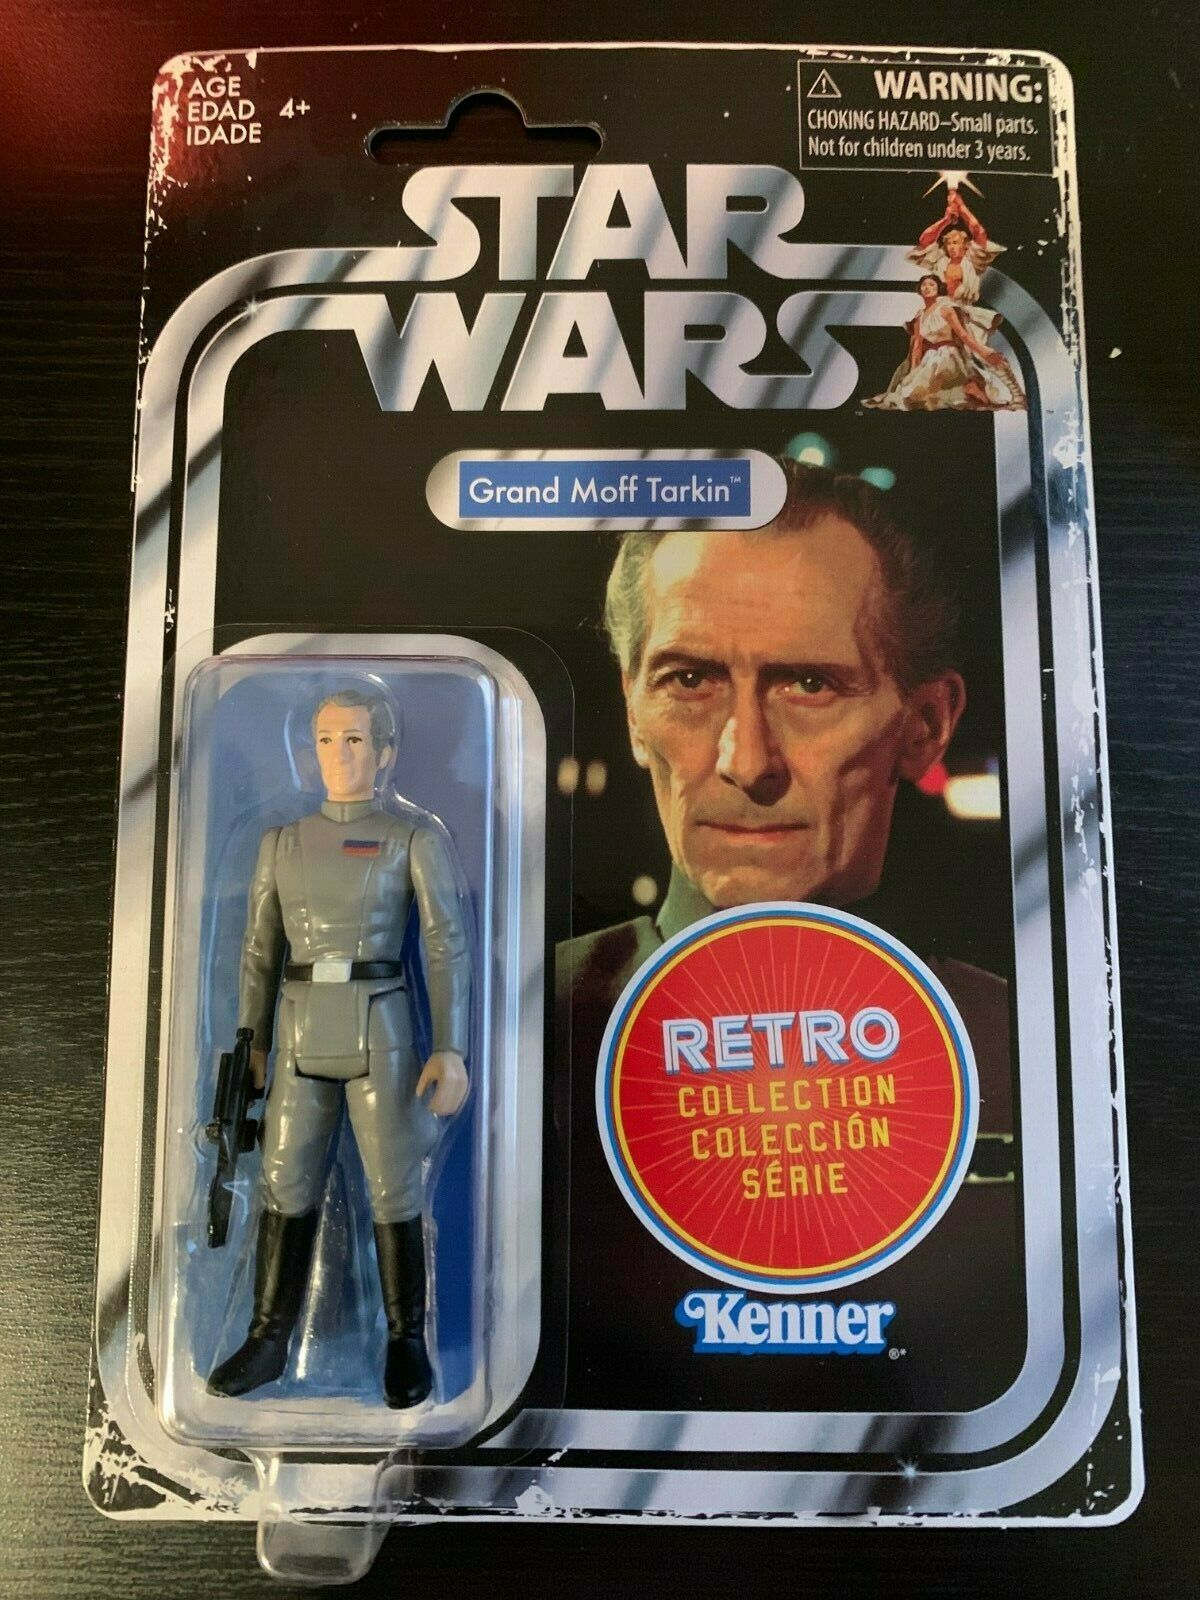 GRAND MOFF TARKIN STAR WARS RETRO COLLECTION VINTAGE REMAKE MINT KENNER HASBRO